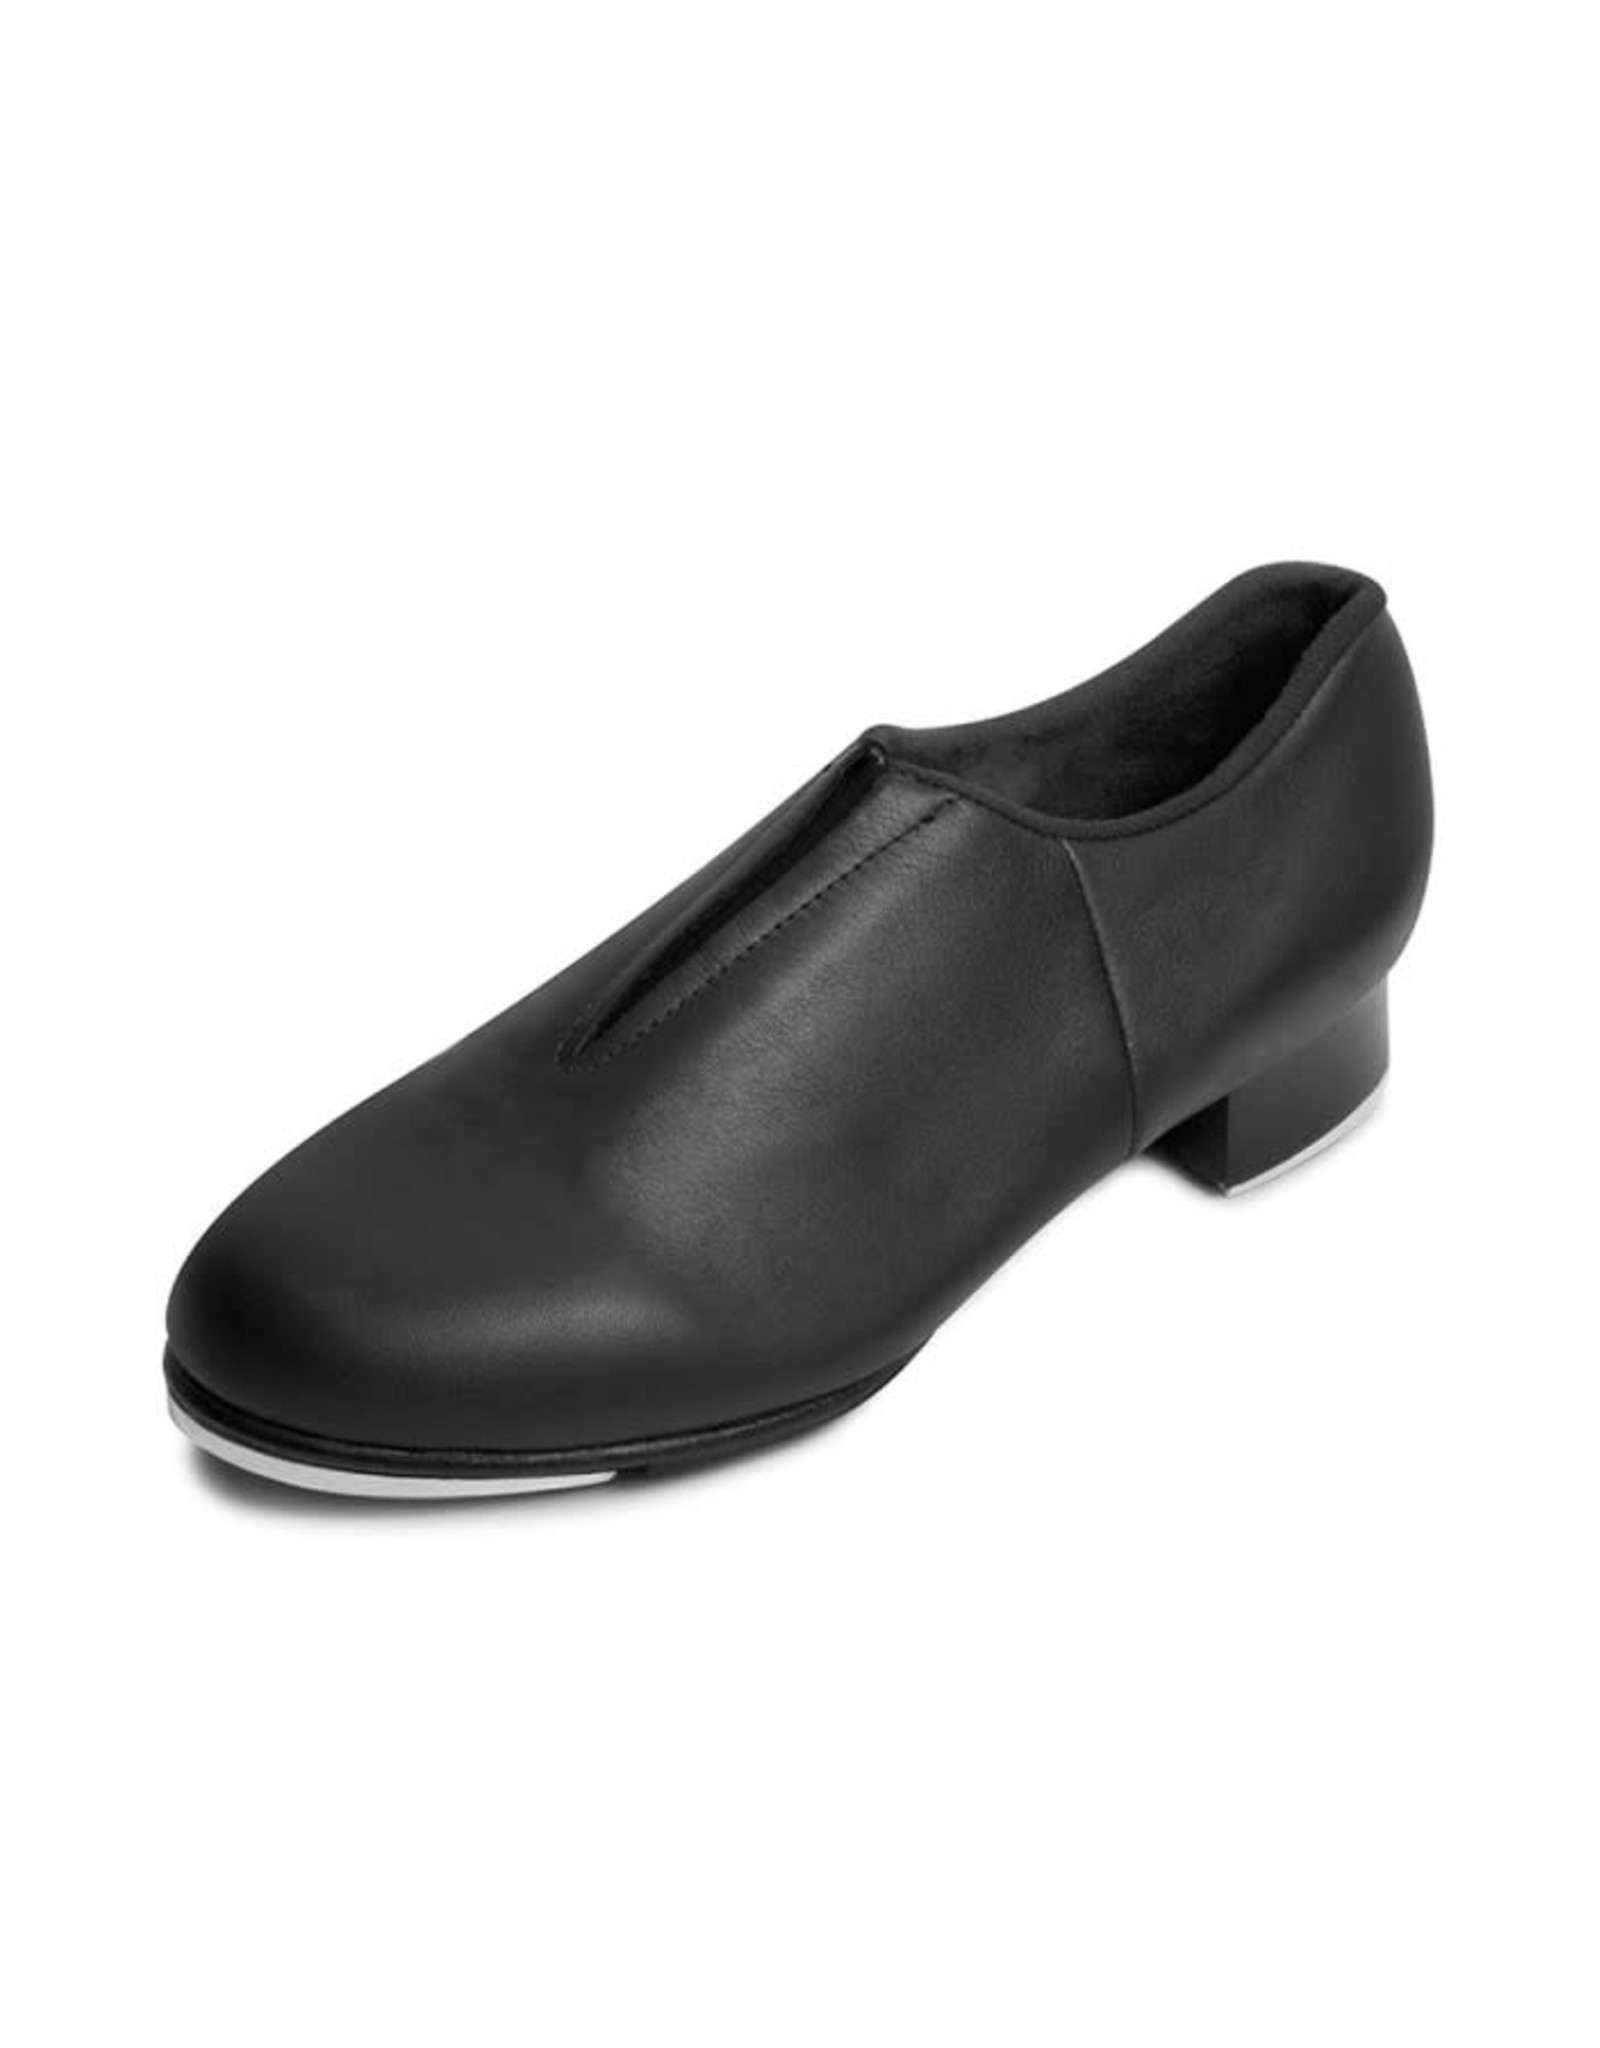 Bloch Bloch Tap Flex Slip On - Black  9.5 N